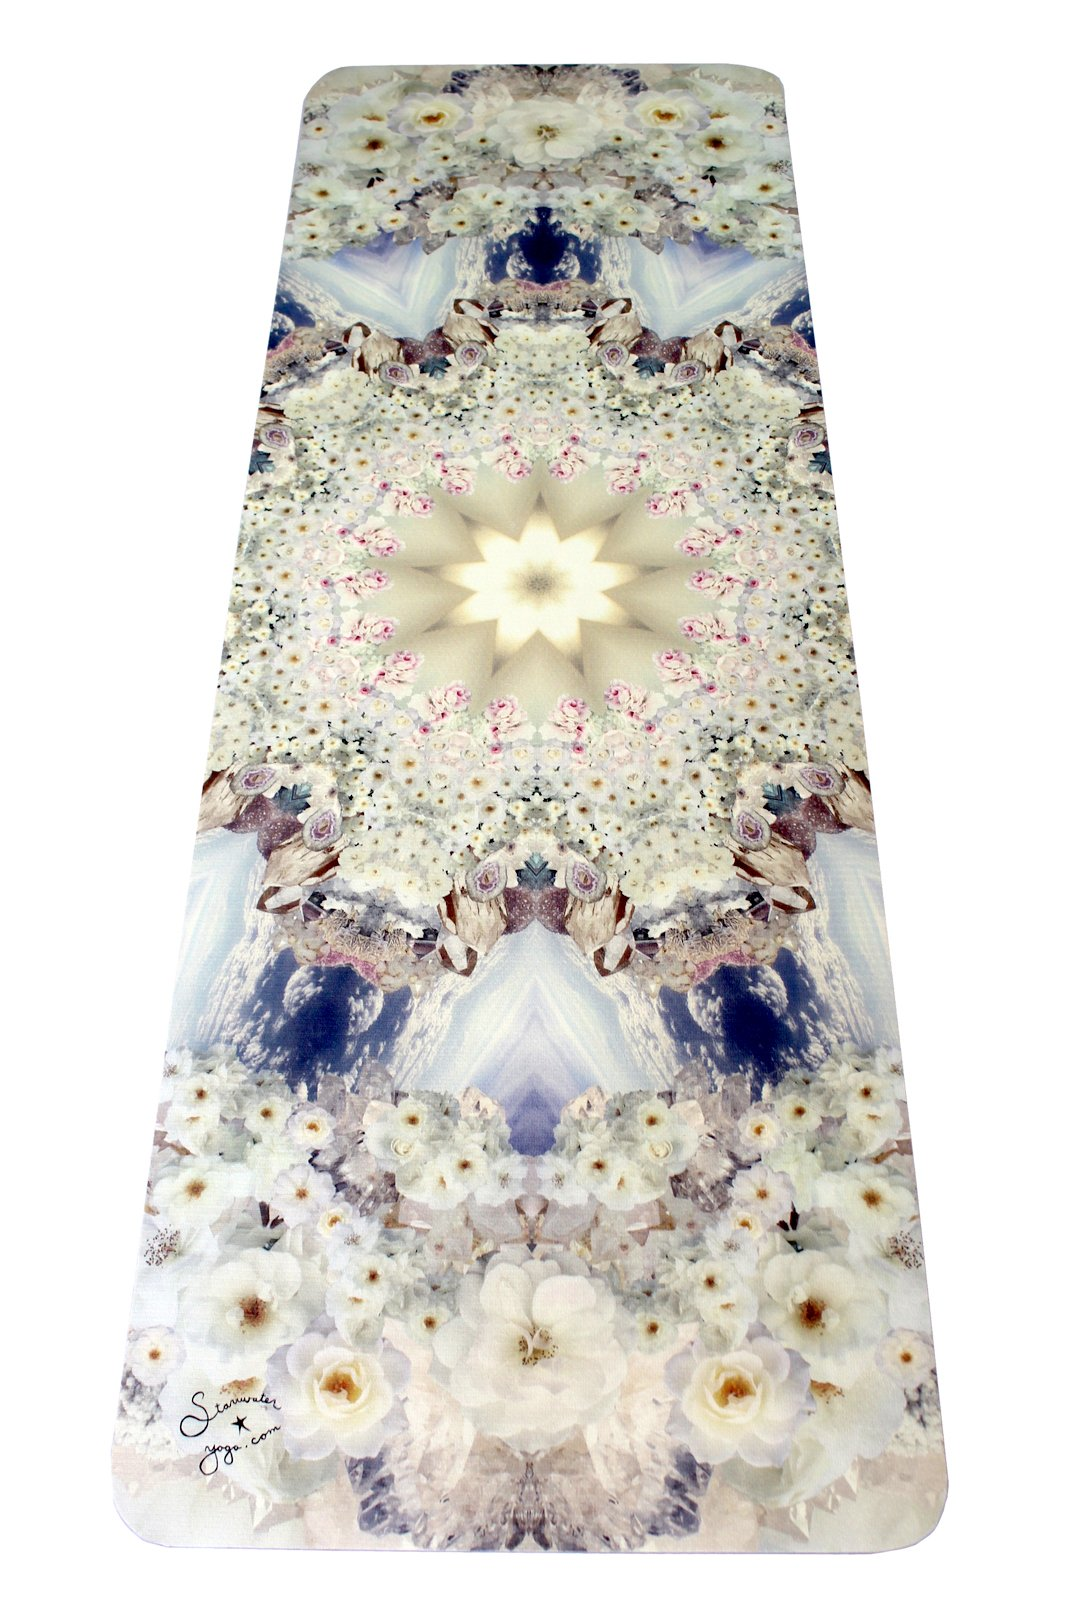 PEACE // White Rose Crystal Yoga Mat